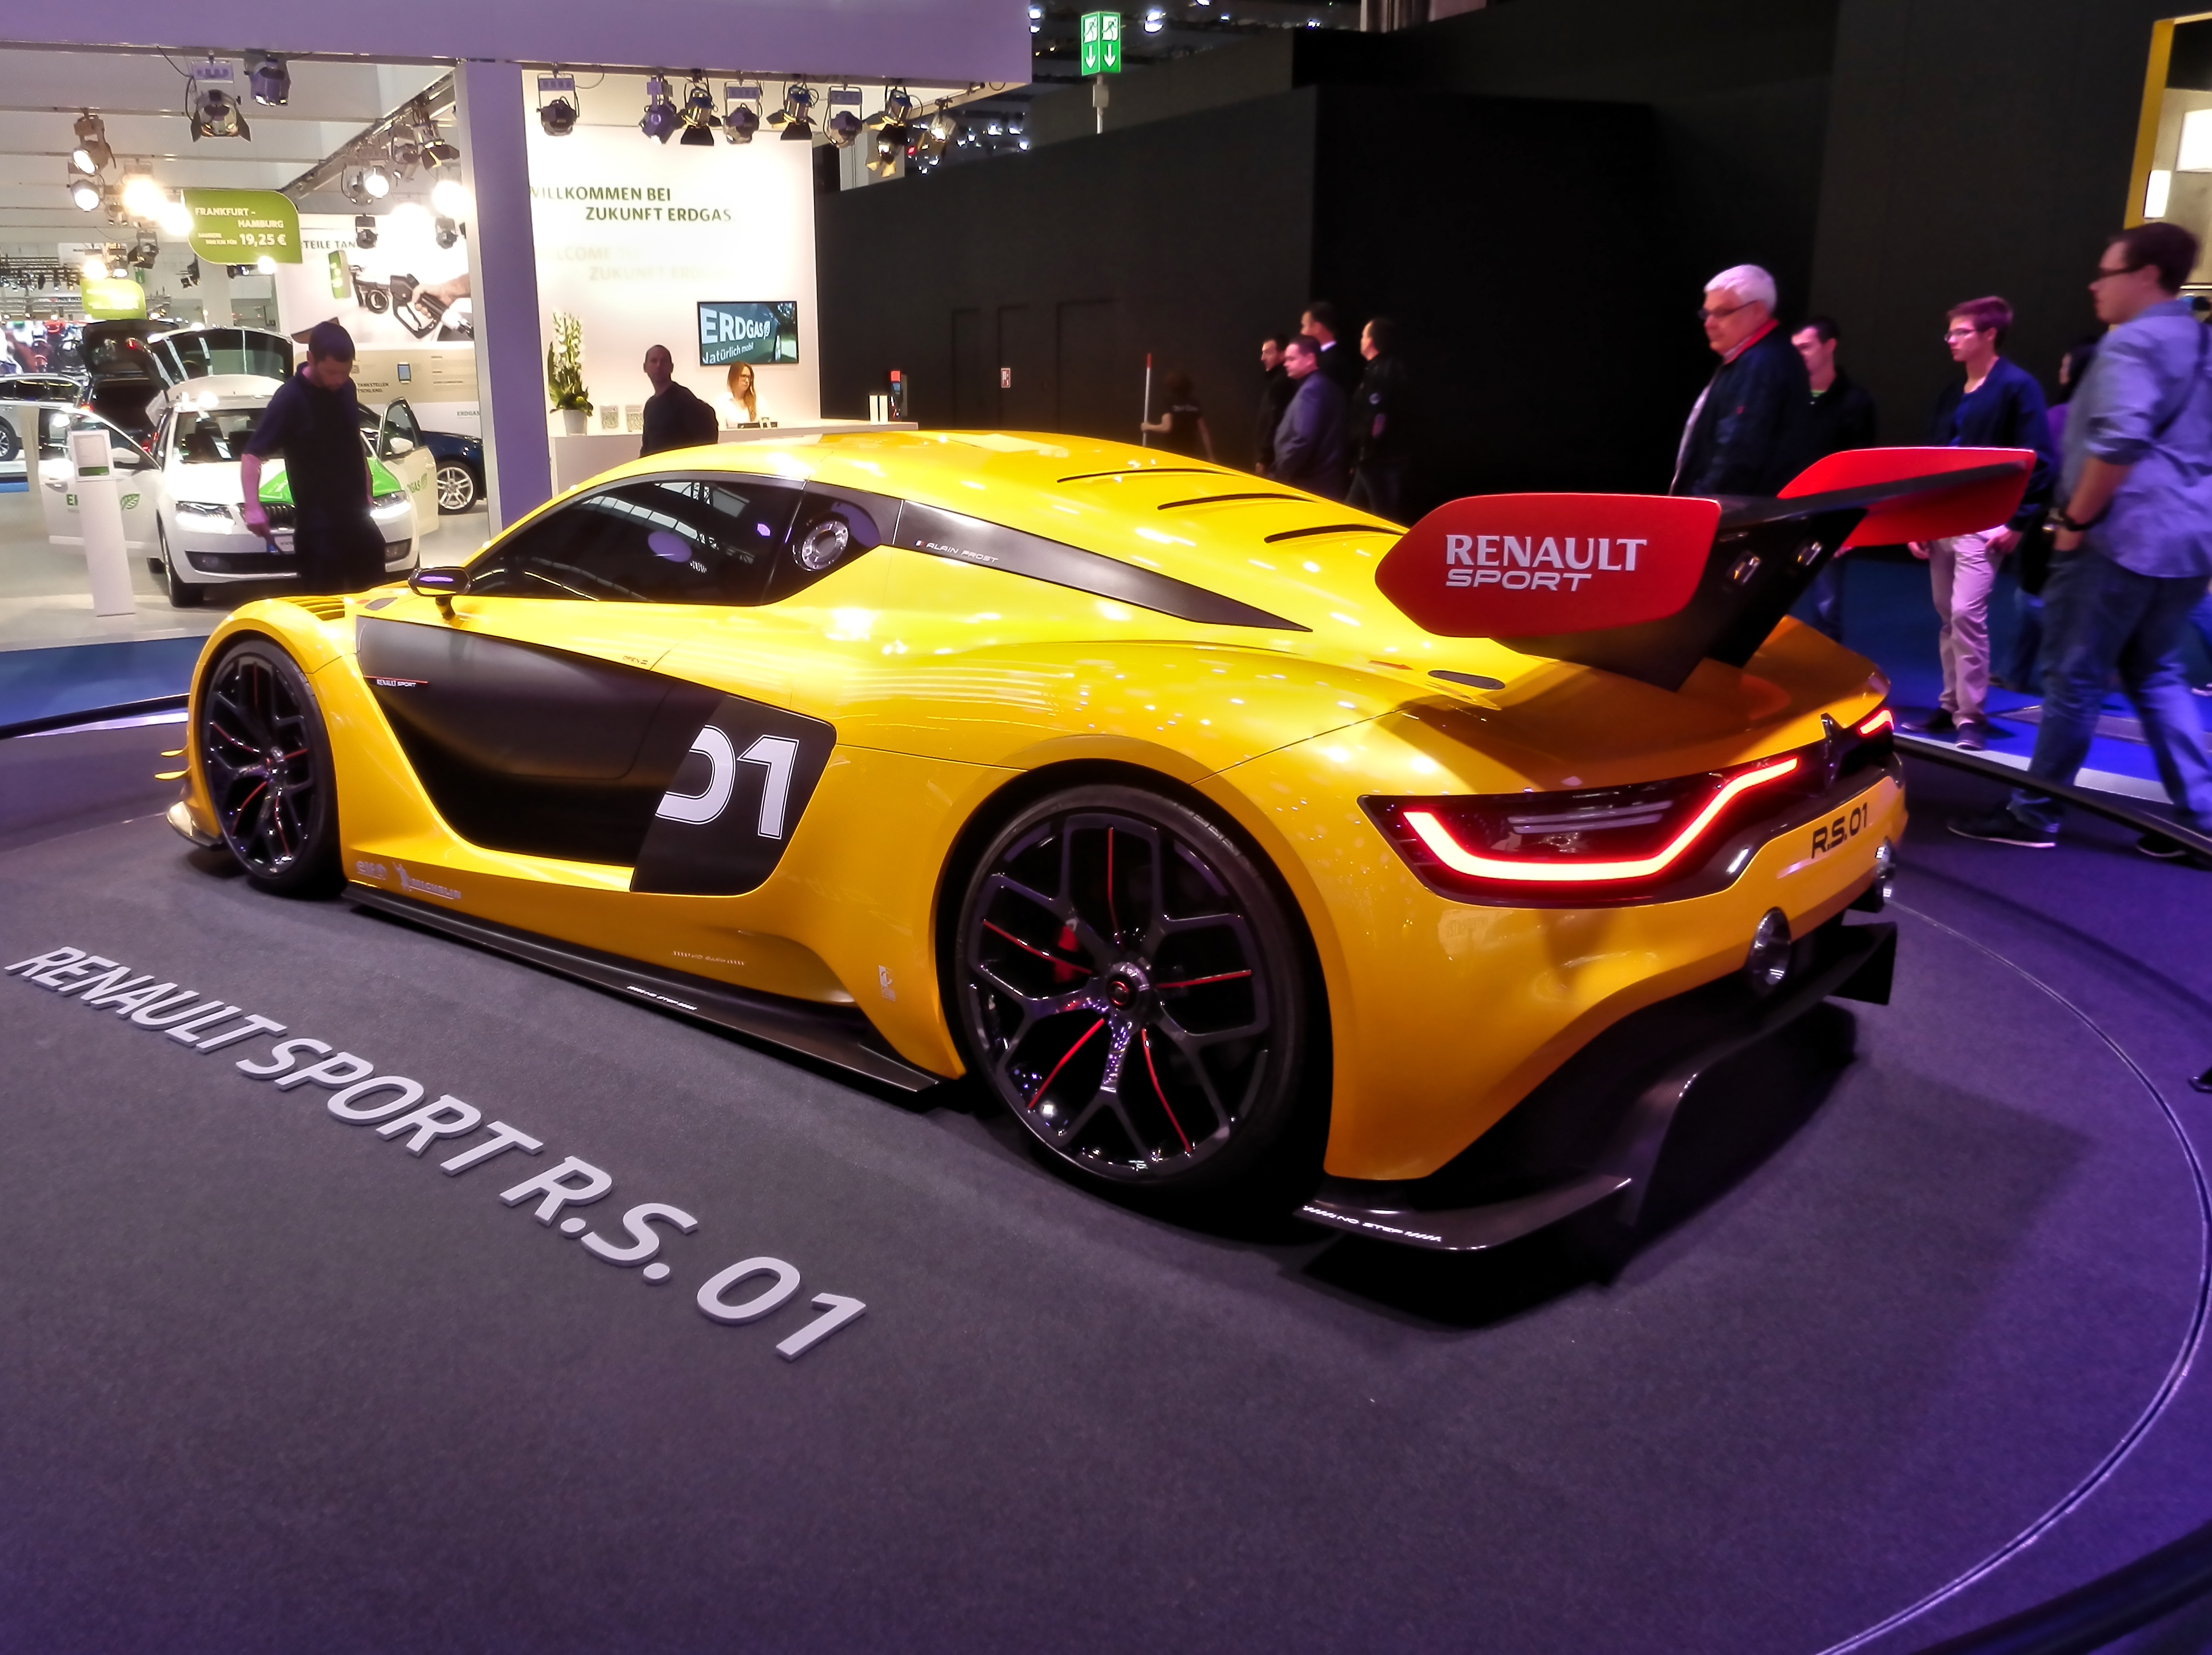 https://upload.wikimedia.org/wikipedia/commons/a/a5/Renault_Sport_R.S._01_Back_IAA_2015.jpg